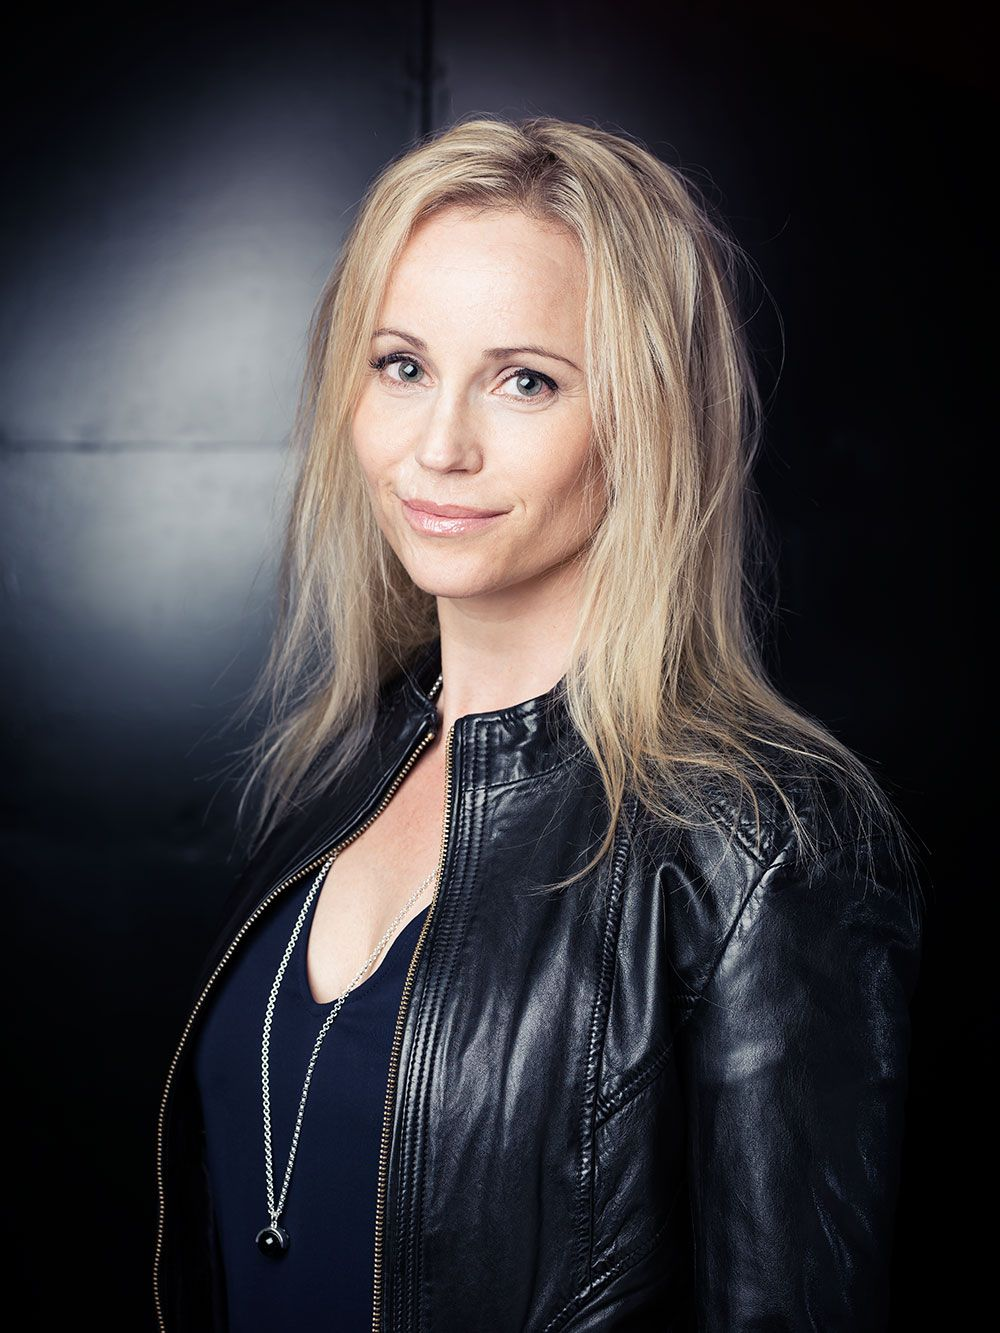 sofia helin - bron broensofia helin wiki, sofia helin daniel götschenhjelm, sofia helin filmy, sofia helin - bron broen, sofia helin youtube, sofia helin height, sofia helin instagram, sofia helin husband, sofia helin insta, sofia helin facebook, sofia helin interview, sofia helin photos, sofia helin broen, sofia helin saga noren, sofia helin wikipedia